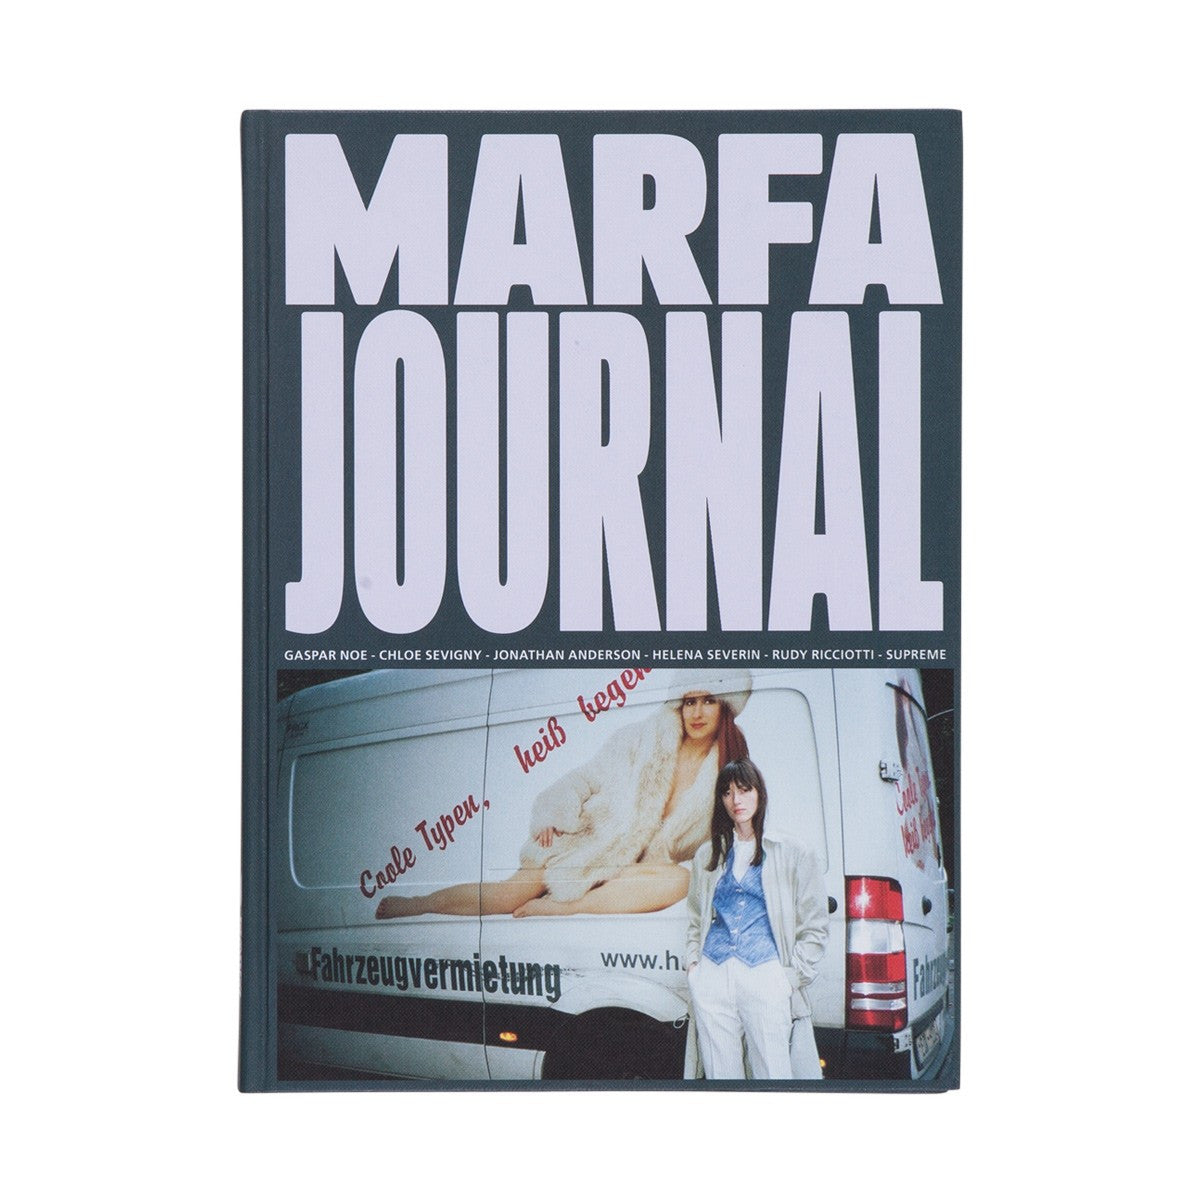 MARFA JOURNAL 03 (HELENA SEVERIN's ROADTRIP: from Paris to Berlin to Paris by Alexandra Gordienko cover)